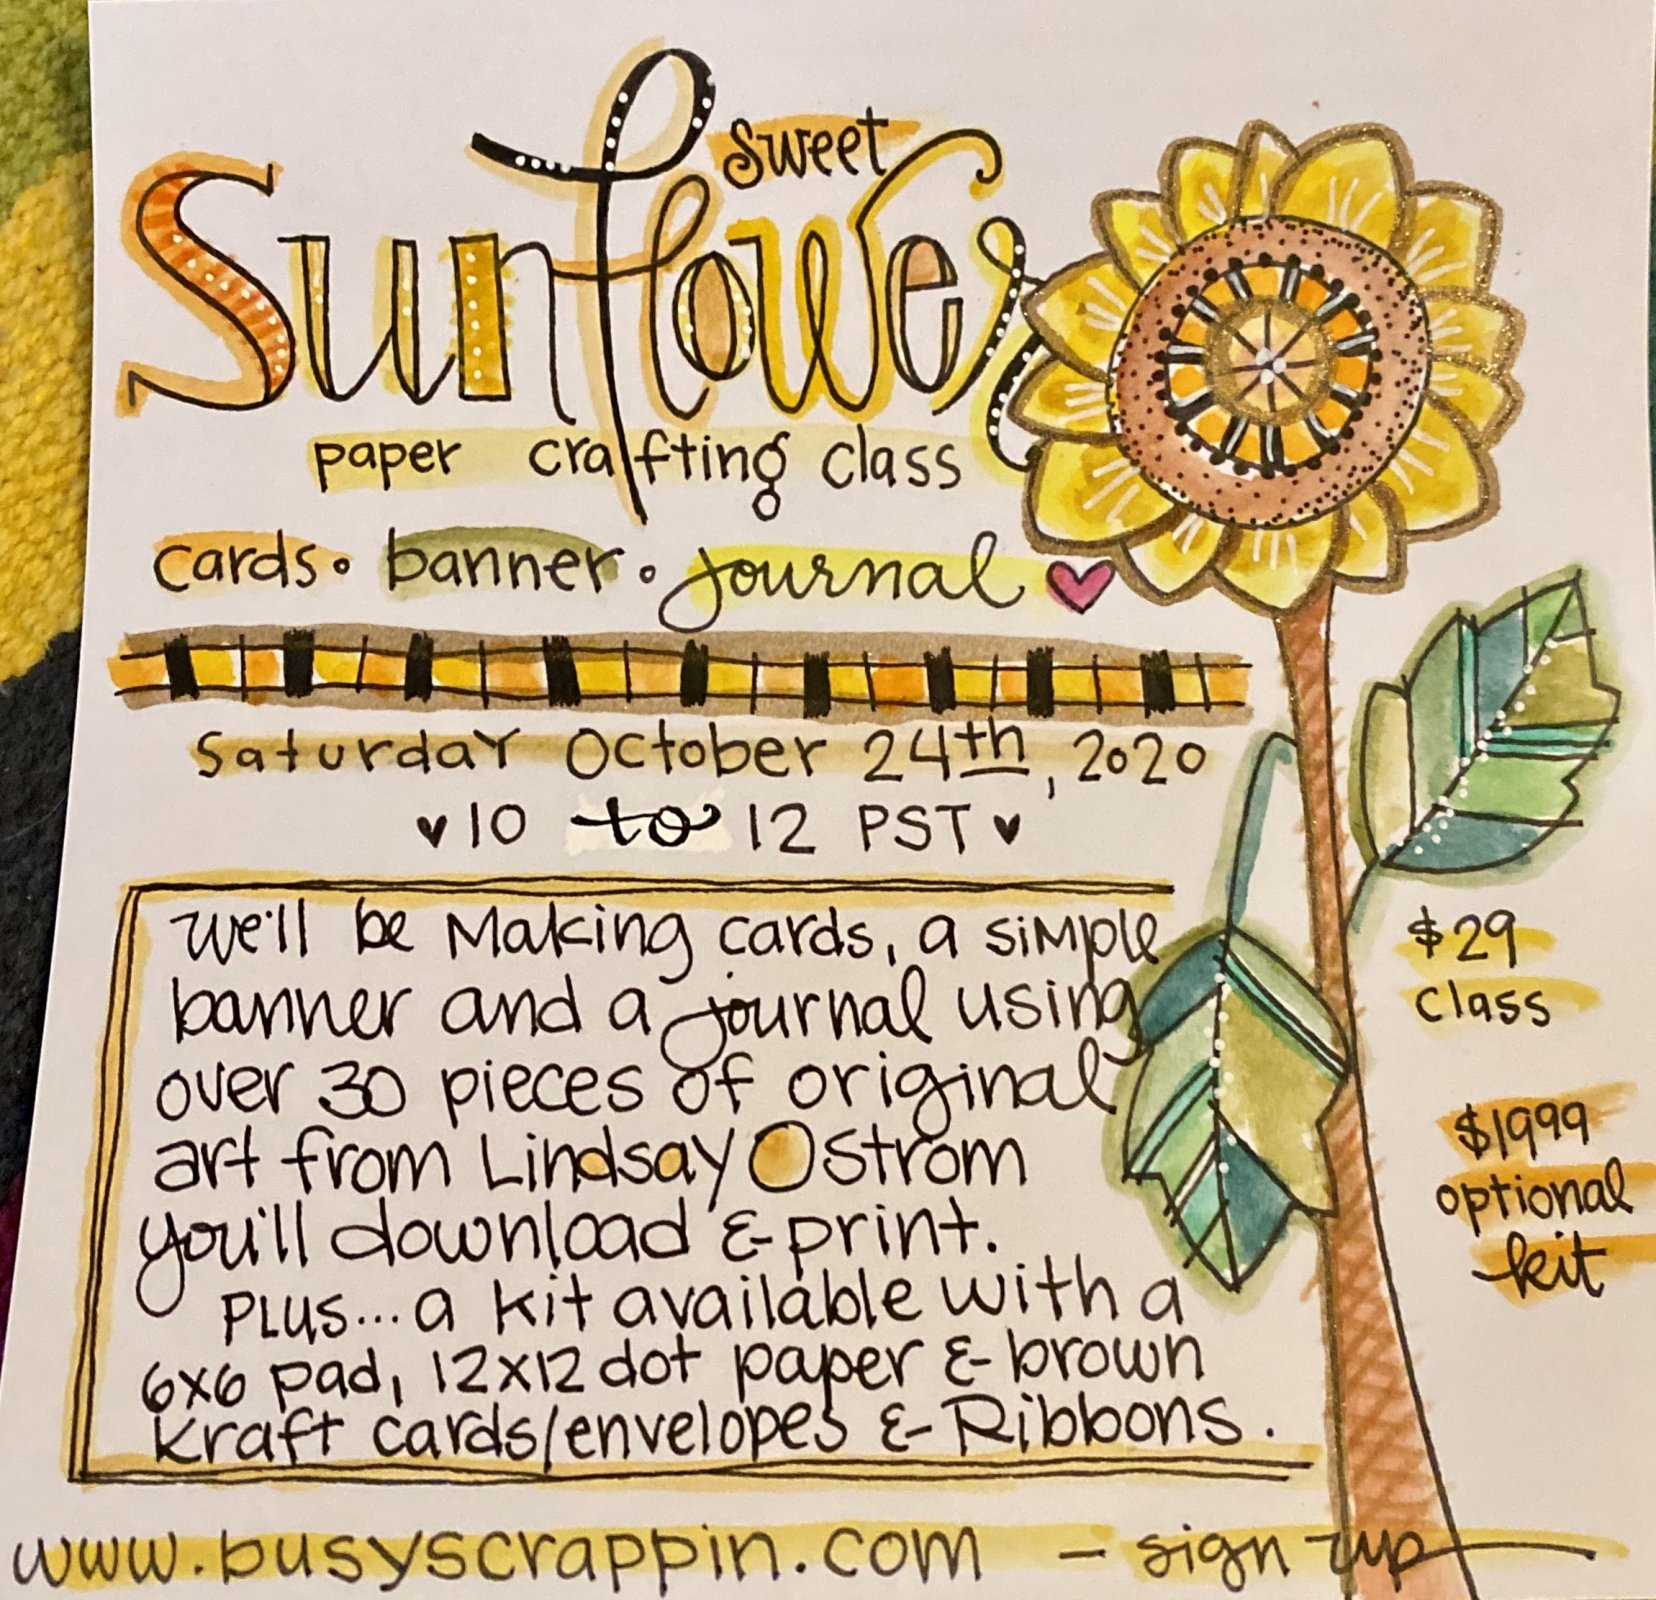 Sweet Sunflowers Class with Lindsay Ostrom